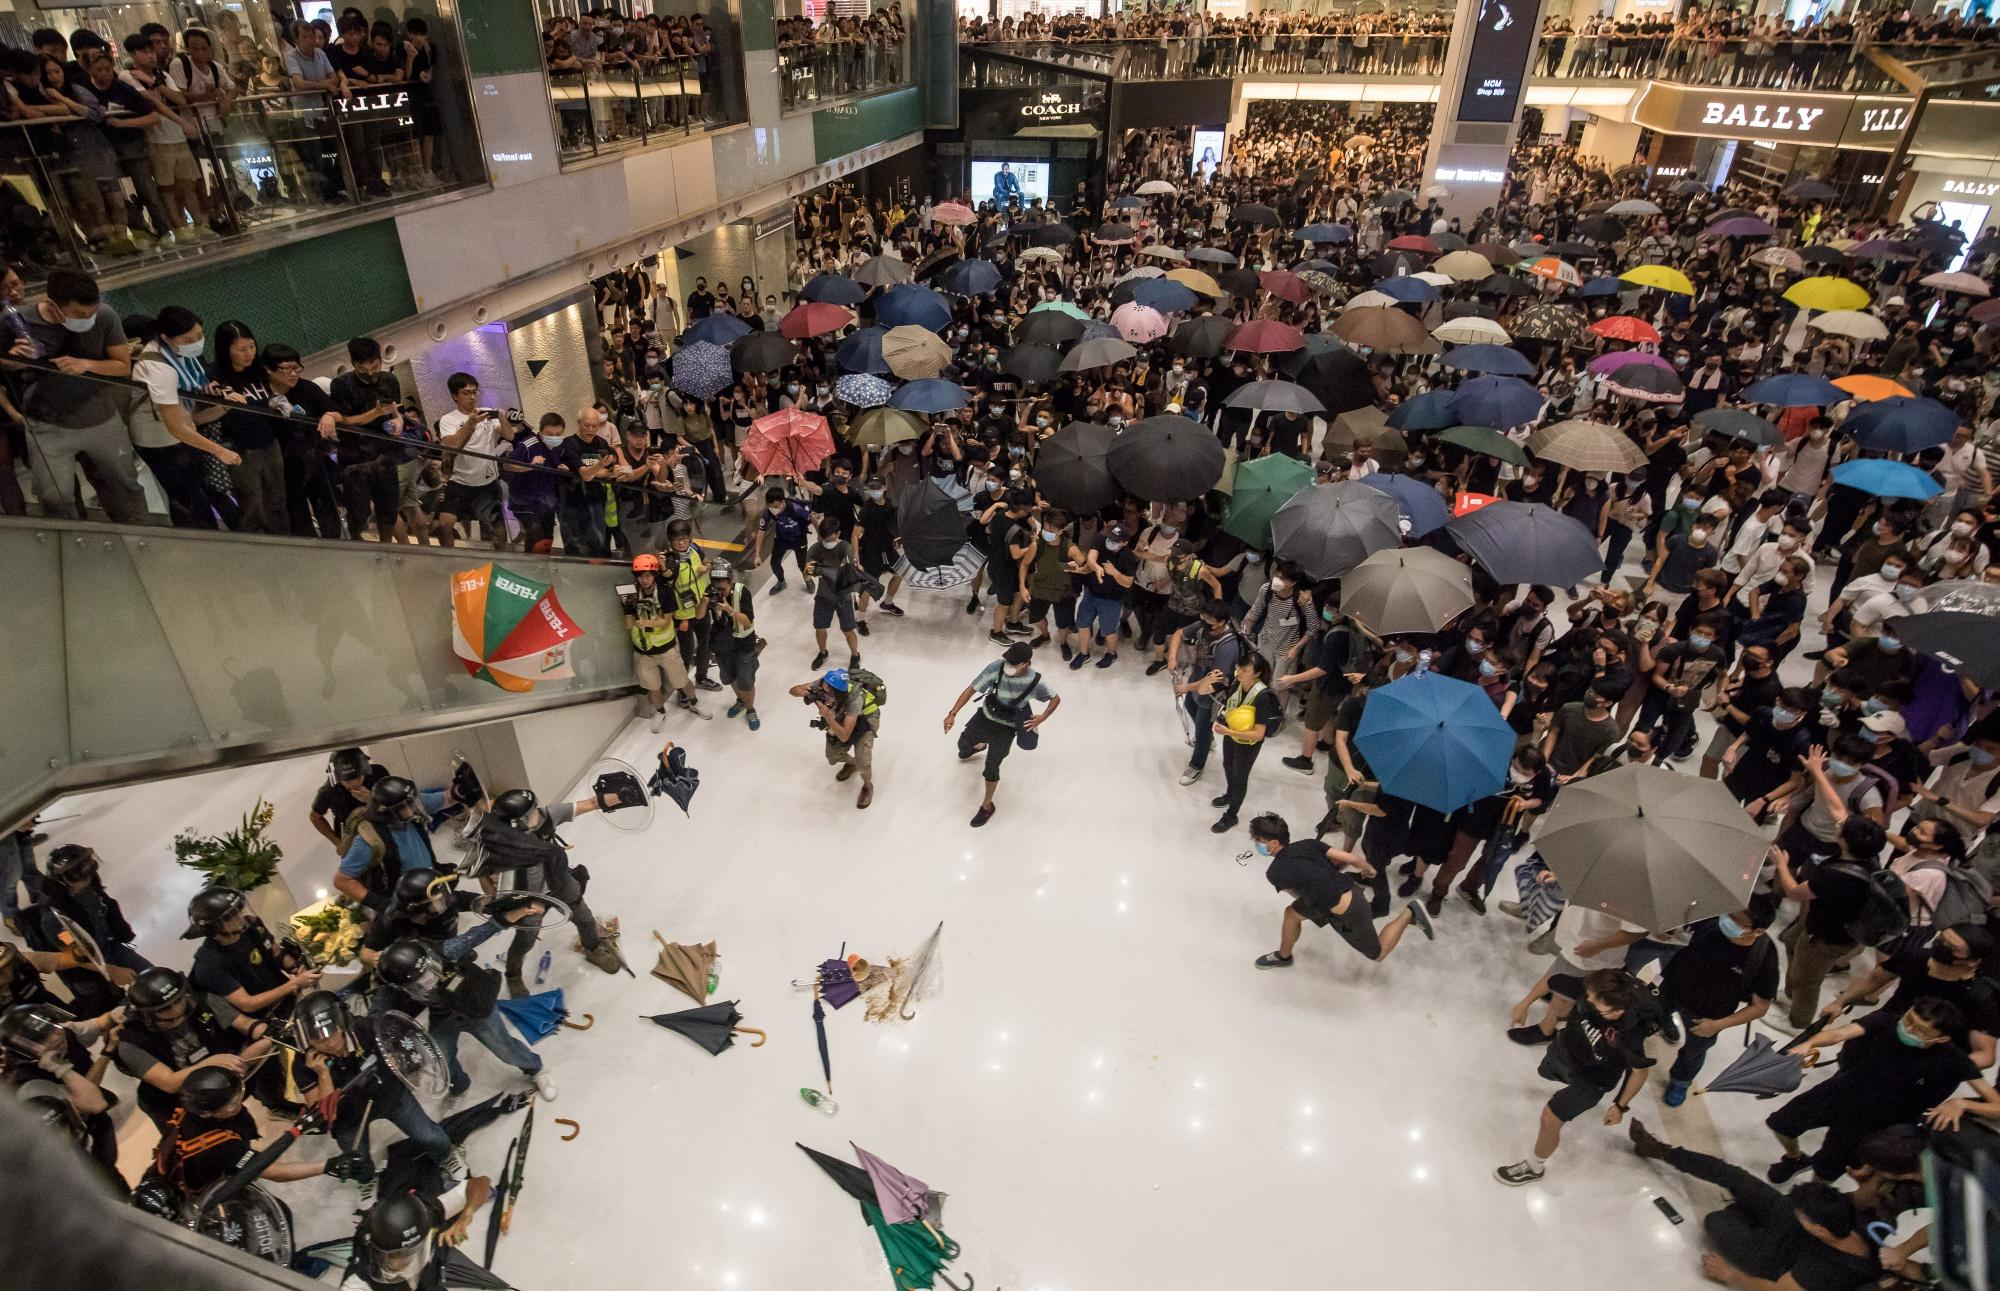 "(Bloomberg) -- Hong Kong police arrested more than 40 people after attempts to clear the remnants of a mass anti-government march resulted in dramatic clashes with demonstrators inside a suburban shopping mall, piling more pressure on embattled leader Carrie Lam.Scuffles broke out in New Town Plaza as police moved to clear stragglers from a rally earlier Sunday in Sha Tin, a popular destination for locals and visitors from China and home to one of the city's horse racing tracks. Rally organizers said 110,000 people had turned out to protest the city's chief executive and her controversial bid to allow extraditions to the mainland, while police estimated the crowd at 28,000.The unrest came as the Financial Times reported that Lam had offered to resign in recent weeks, only to be refused by authorities in China, citing unidentified people familiar with the matter. Beijing insisted that she remain in office to fix ""the mess she created,"" according to one person.Lam on Monday vowed she would continue in her position as Hong Kong's leader.""The chief executive's tenure is five years. Although I face a lot of difficulties, I have repeatedly said publicly that I still have the responsibility and enthusiasm to continue my work during my tenure,"" she told reporters at a hospital after visiting officers injured in the clashes.New MessageCrowds of Hong Kong protesters have turned out in unprecedented sizes every week since mid-June. In recent days their ire has focused on China, which has ruled the former British colony since 1997. Thousands of demonstrators last Sunday walked through the Tsim Sha Tsui area popular with mainland tourists toward the city's new high-speed rail station to China.Beijing has continued to back Lam publicly. Chinese Foreign Ministry spokesman Geng Shuang said Monday that he hadn't heard anything about the FT's report and that the central government ""firmly supports"" her leadership. Sunday's protesters threw objects including umbrellas, water bottles and other objects at police, some from the floors above as officers tried to disperse the crowd, Radio Television Hong Kong reported. Lam on Monday referred to those who attacked police as ""rioters,"" a term that has angered protesters because it carries certain legal connotations. Security chief John Lee called the incidents an escalation of violence and said the demonstrators who attacked police were ""well organized.""Ten officers were injured, including at least one who lost a finger, in fights between riot police and umbrella-wielding protesters Sunday evening, Police Commissioner Stephen Lo said in a 2:30 a.m. briefing Monday. One protester suspected of biting off part of an officer's finger was among those arrested, he said.Twenty-two demonstrators were also injured at the mall, RTHK reported, citing the city's hospital authority. Three were in serious condition, it said. The mall is owned by Sun Hung Kai Properties Ltd.Hong Kong's Demonstrators Get Creative With War of the WallsOpposition lawmaker Alvin Yeung held a late-night media briefing in the mall, saying the police hadn't let protesters leave safely. The mere presence of the riot officers could have triggered demonstrators' emotions and made them nervous, he said.""If we are aware of illegal behavior and if we know those who breached the law are in the mall, then don't we have a responsibility to follow inside to make arrests?"" Lo said in response a question early Monday.How China Can Recover Even If Hong Kong's Lam Quits: QuickTakeLam last week declared that the original cause of the protests -- the extradition bill -- was ""dead."" But she stopped short of officially withdrawing it, leaving open the potential for authorities to revive it with 12 days' notice and providing new momentum for protesters.Further protests are being planned in neighborhoods across the city by demonstrators organizing themselves online and vowing to spread the word until Lam responds to their demands.On Saturday, scuffles also broke out between police and demonstrators after a rally against parallel traders ended in Sheung Shui, near the China border. More than 30,000 people took part in the largely peaceful march, according to North District Parallel Imports Concern Group convener Ronald Leung. Police estimated the turnout at 4,000.The Civil Human Rights Front, a leading protest organizer, has called for a July 21 rally in Admiralty, ground zero for previous gatherings that brought out historic crowds. Its major demand will be an independent probe into what it calls excessive use of force by police in dispersing previous demonstrations with weapons including tear gas, batons and rubber bullets.Lam needs to get a grasp on protesters' grievances and respond to their appeals, the group said Monday.""Otherwise, this campaign will eventually cause irreparable deaths due to the ongoing conflict between the police and the people,"" it said.(Updates with Carrie Lam comment in fourth paragraph.)\--With assistance from Gloria Cheung, Reinie Booysen, Stanley James, Kari Lindberg, Will Davies, Shamim Adam, Fion Li, Dominic Lau, Alfred Liu and Aibing Guo.To contact the reporters on this story: Natalie Lung in Hong Kong at flung6@bloomberg.net;Stephen Tan in Hong Kong at ztan39@bloomberg.netTo contact the editors responsible for this story: Brendan Scott at bscott66@bloomberg.net, Karen LeighFor more articles like this, please visit us at bloomberg.com©2019 Bloomberg L.P."